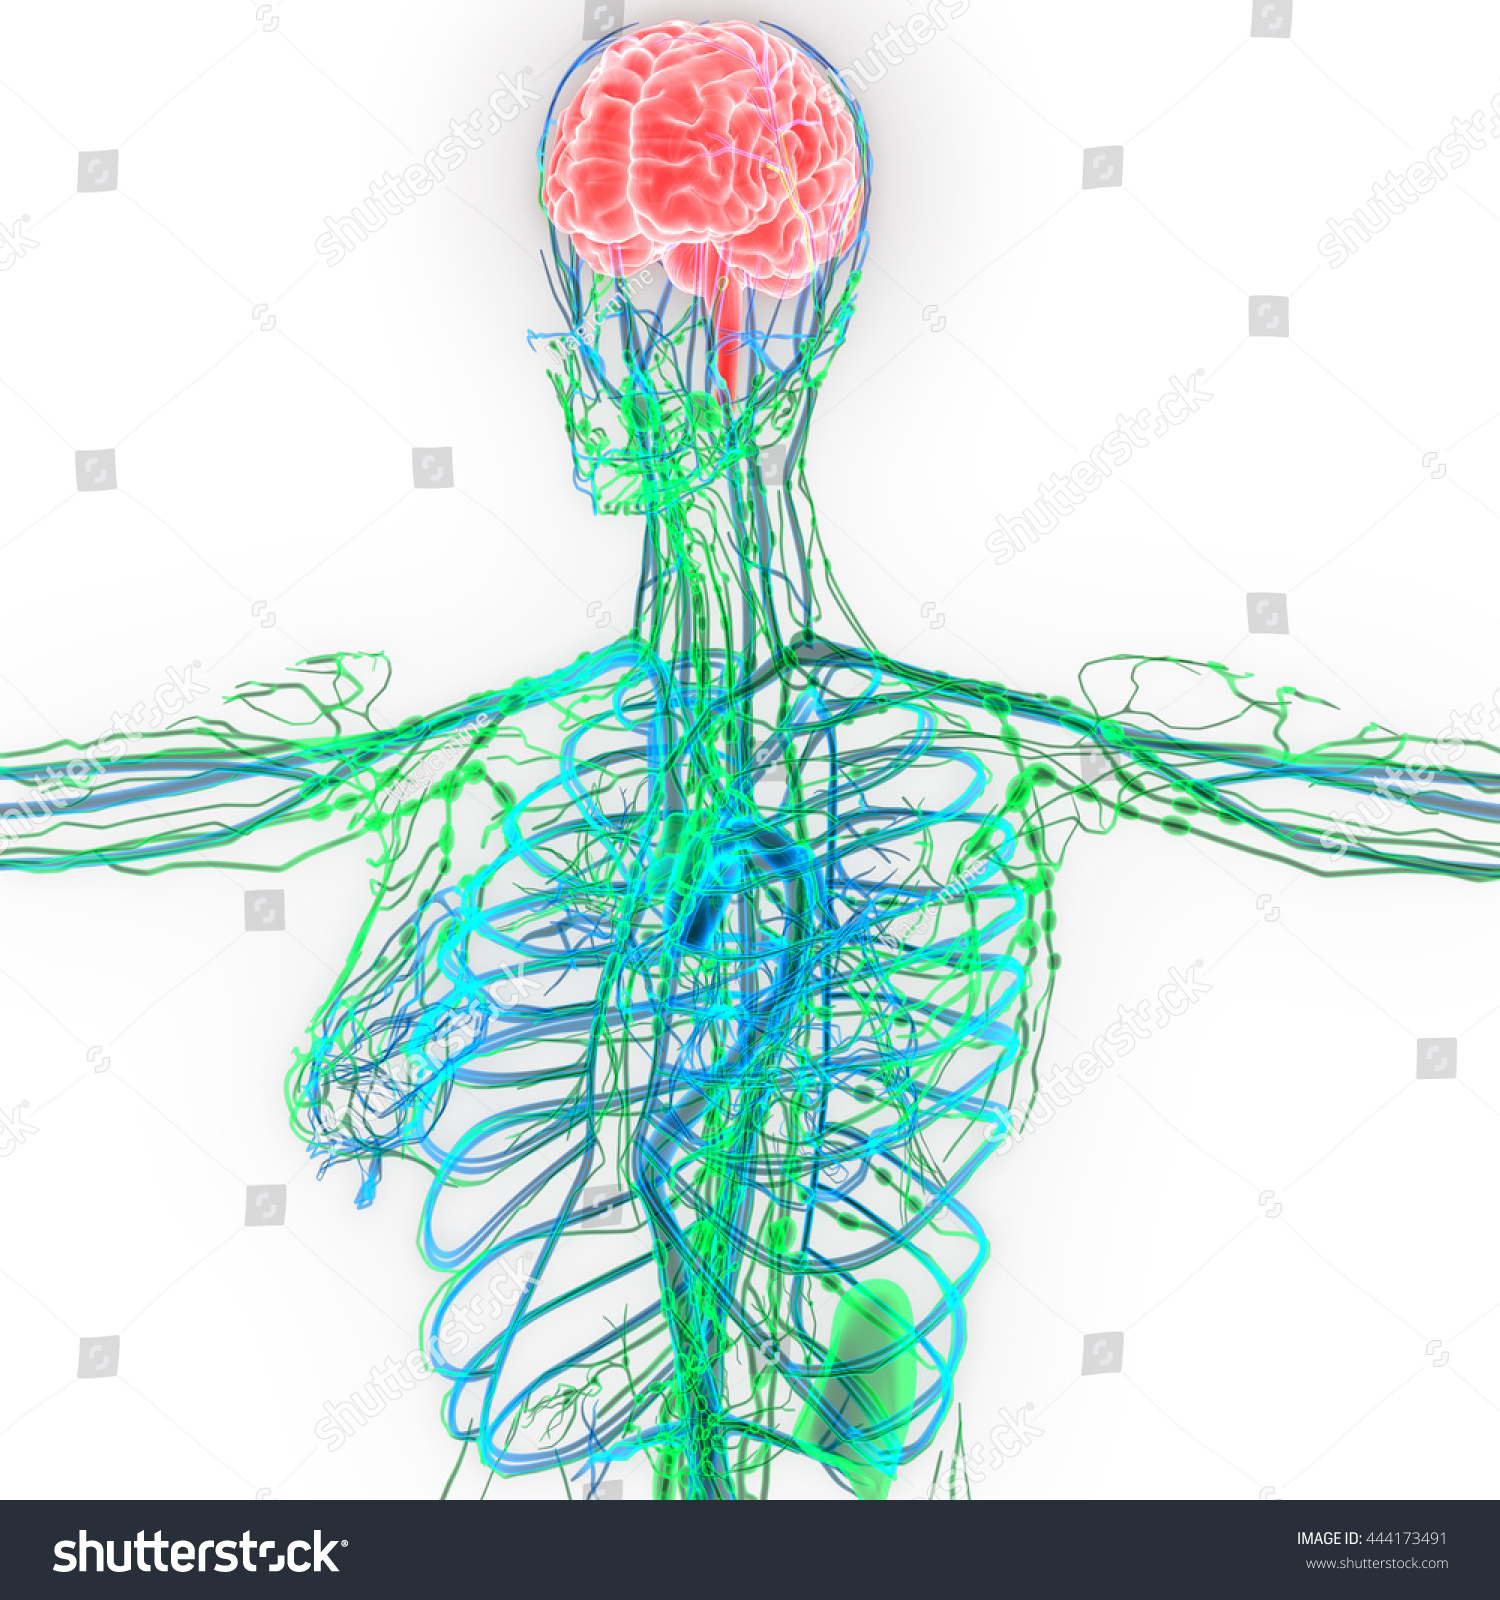 Human Brain Nerves Lymph Nodes Veins Stock Illustration 444173491 ...